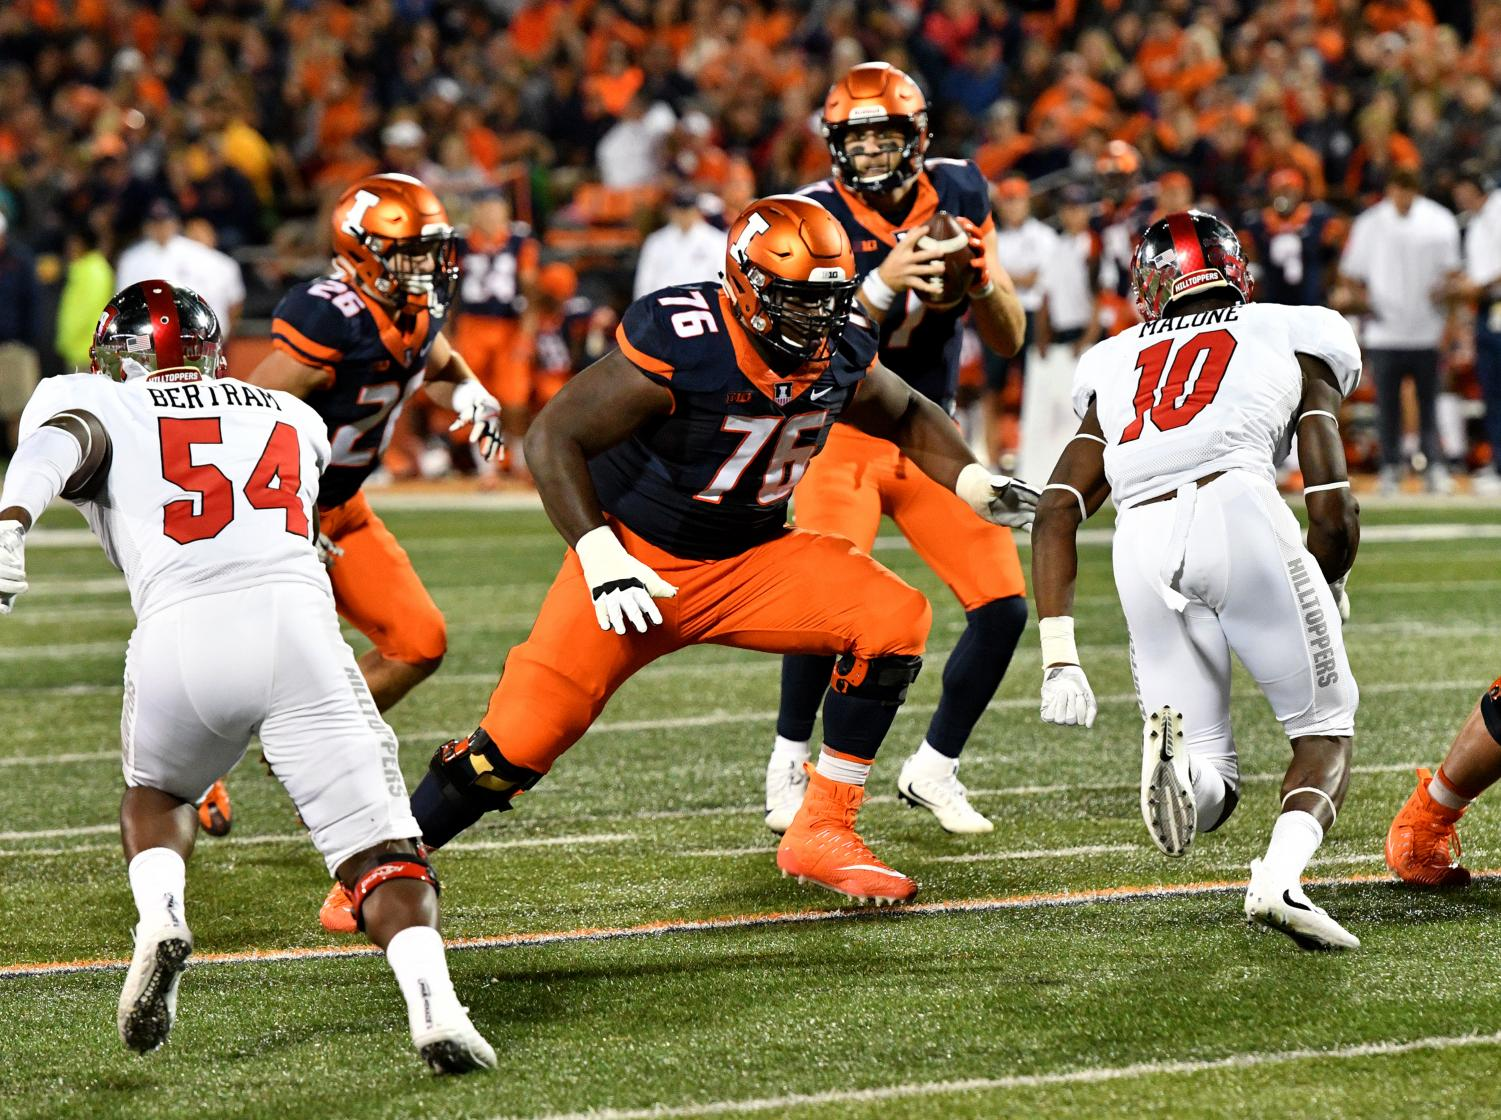 Illinois offensive lineman Larry Boyd protects quarterback Chayce Crouch during a 24-21 in against Ball State at Memorial Stadium on Sept. 2. Boyd has seen significant playing time despite being a freshman.